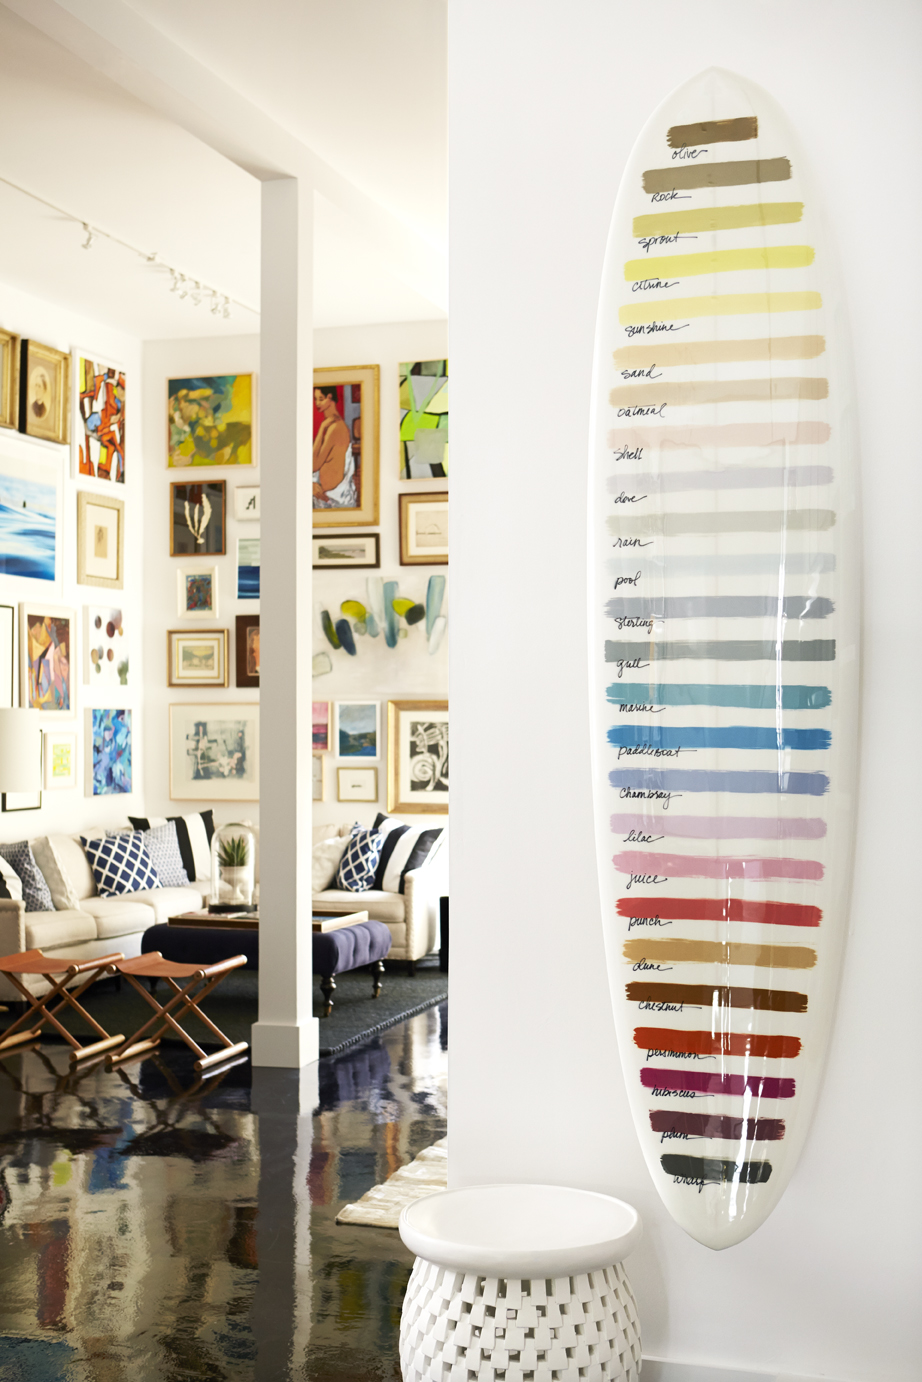 Serena & Lily Design Shop, San Francisco.  Sacramento Street. - Paint-swatch Surfboard -- created to present our Serena & Lily paint color range in a visually memorable way.